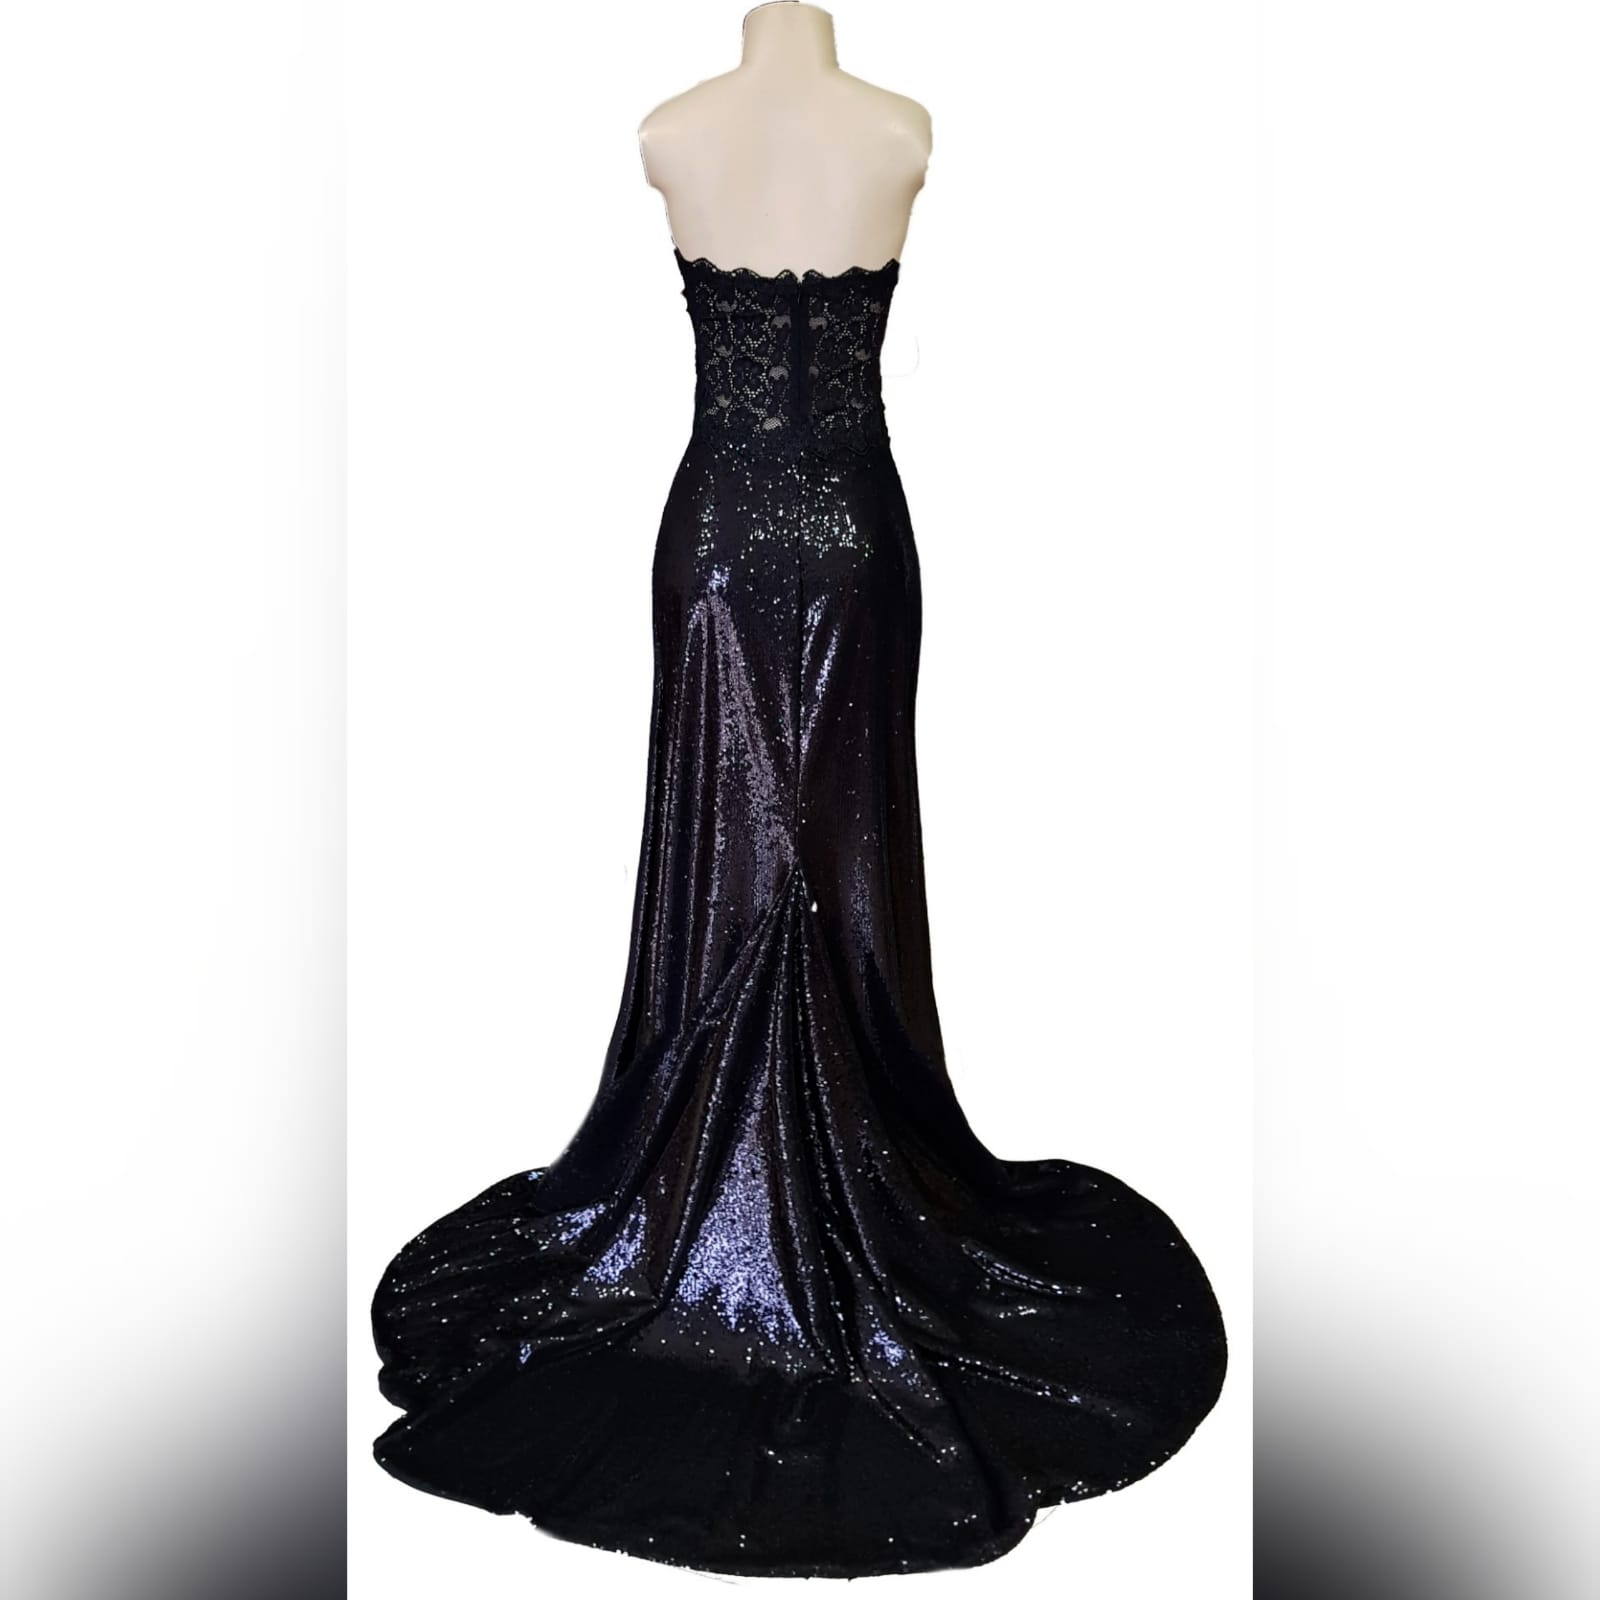 Long black sequins boob tube prom dress 8 long black sequins boob tube prom dress with a sheer lace back and side tummy. High slit and a train.